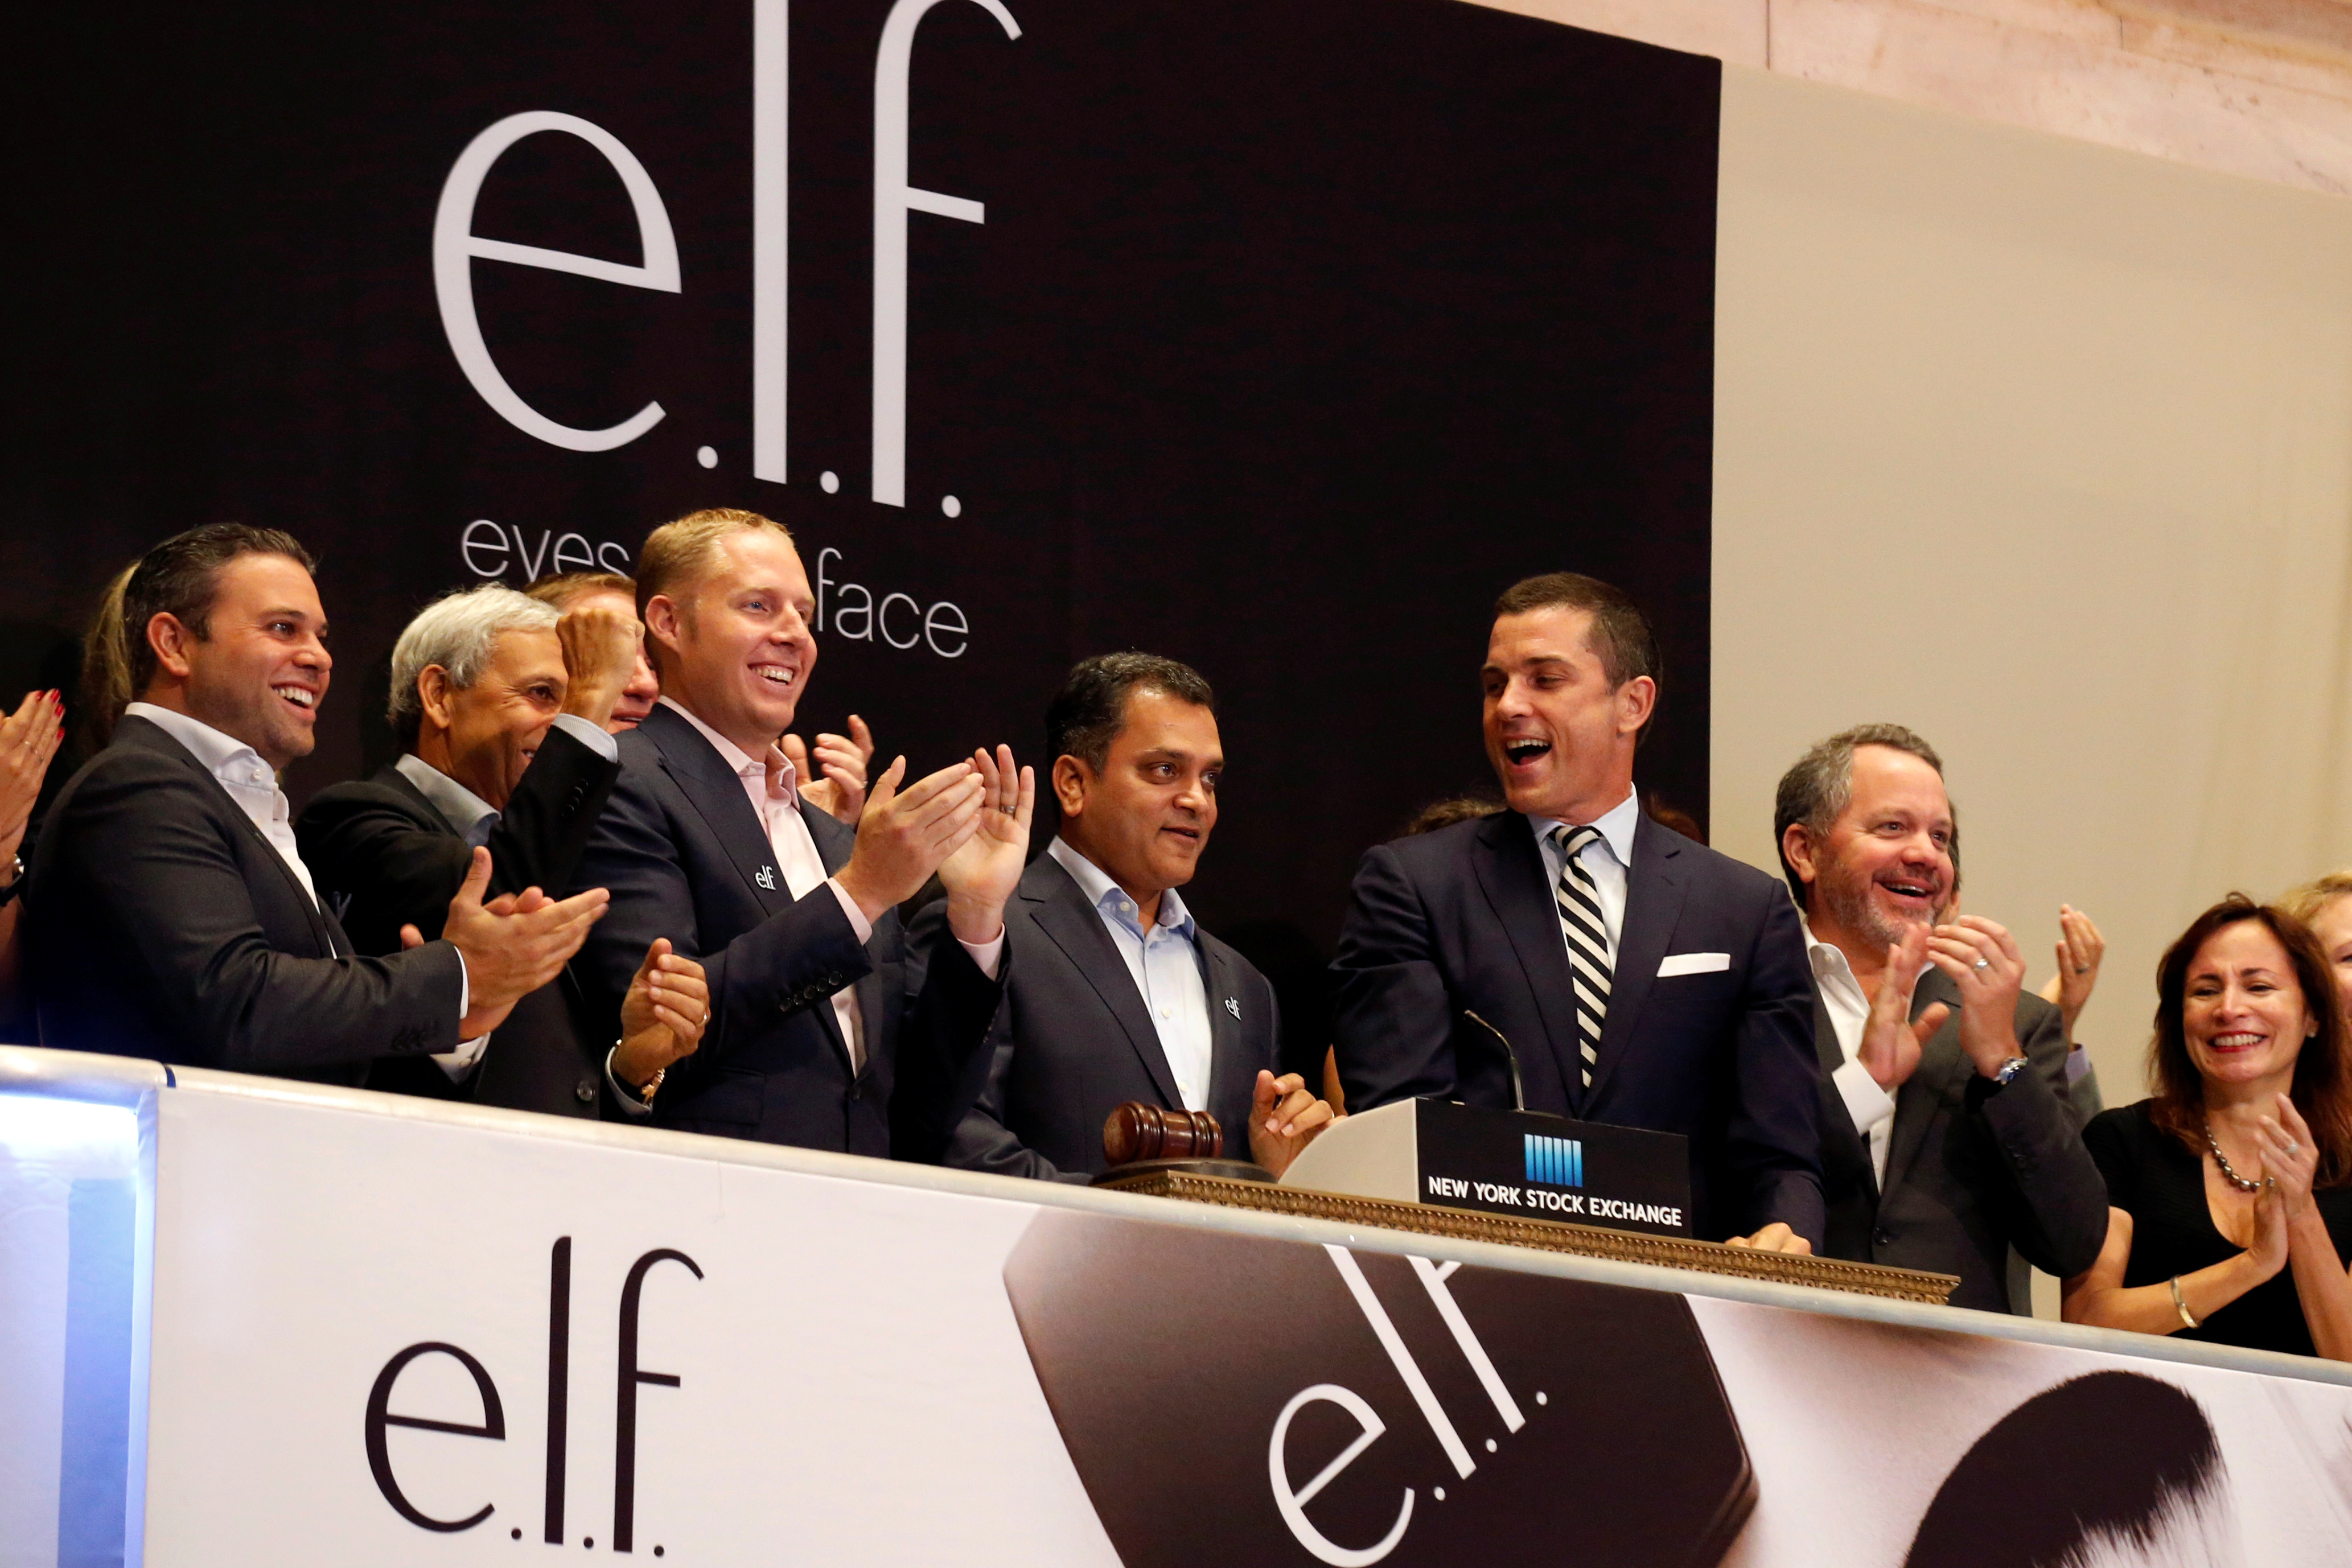 CEO of e.l.f. Beauty Inc. Tarang Amin rings the opening bell at the NYSE to celebrate his company's IPO in New York City